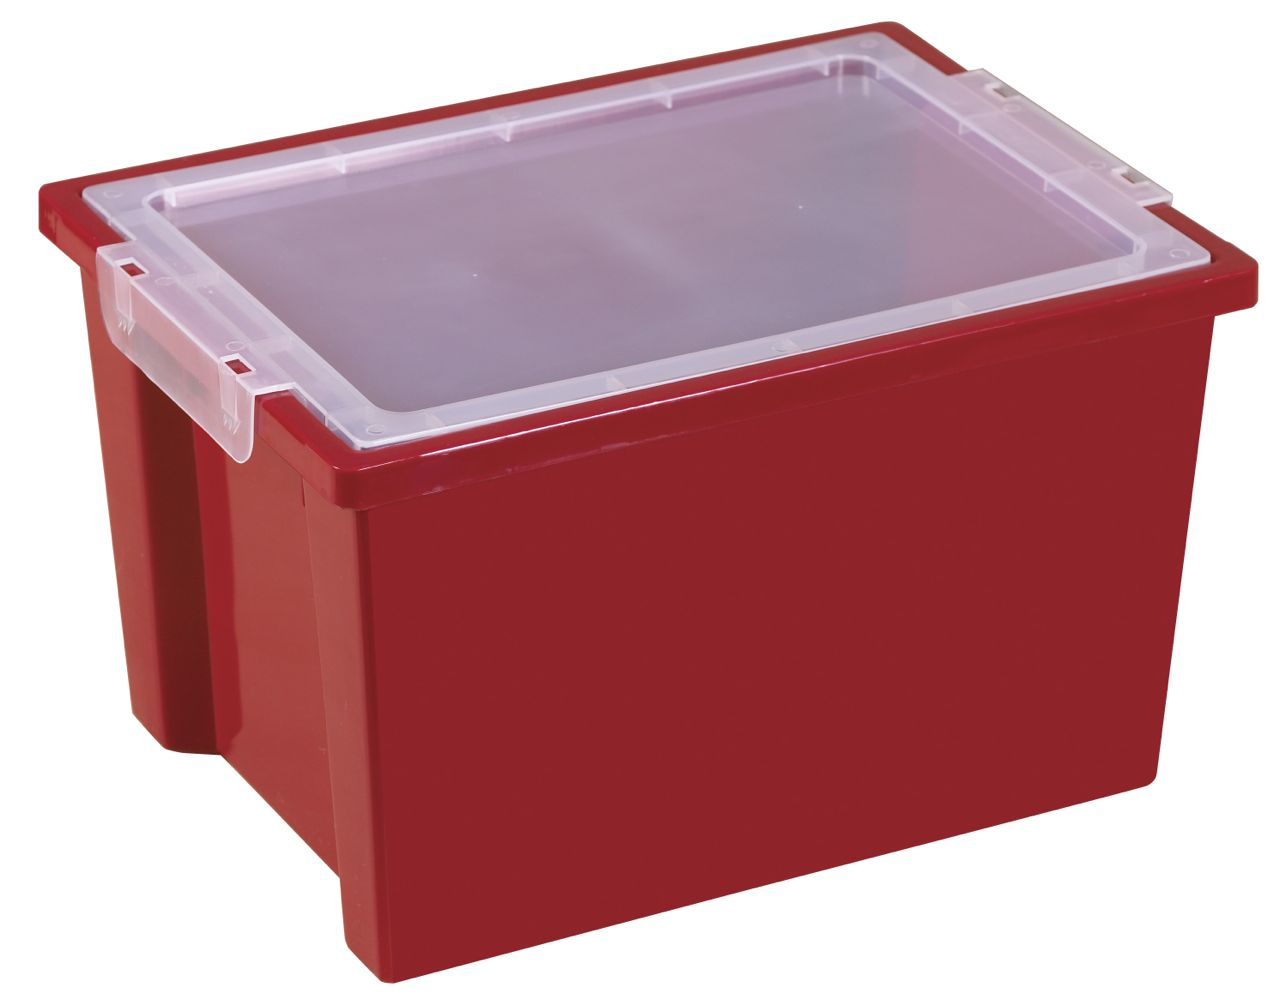 Image Result For Large Plastic Storage Bins With Lids